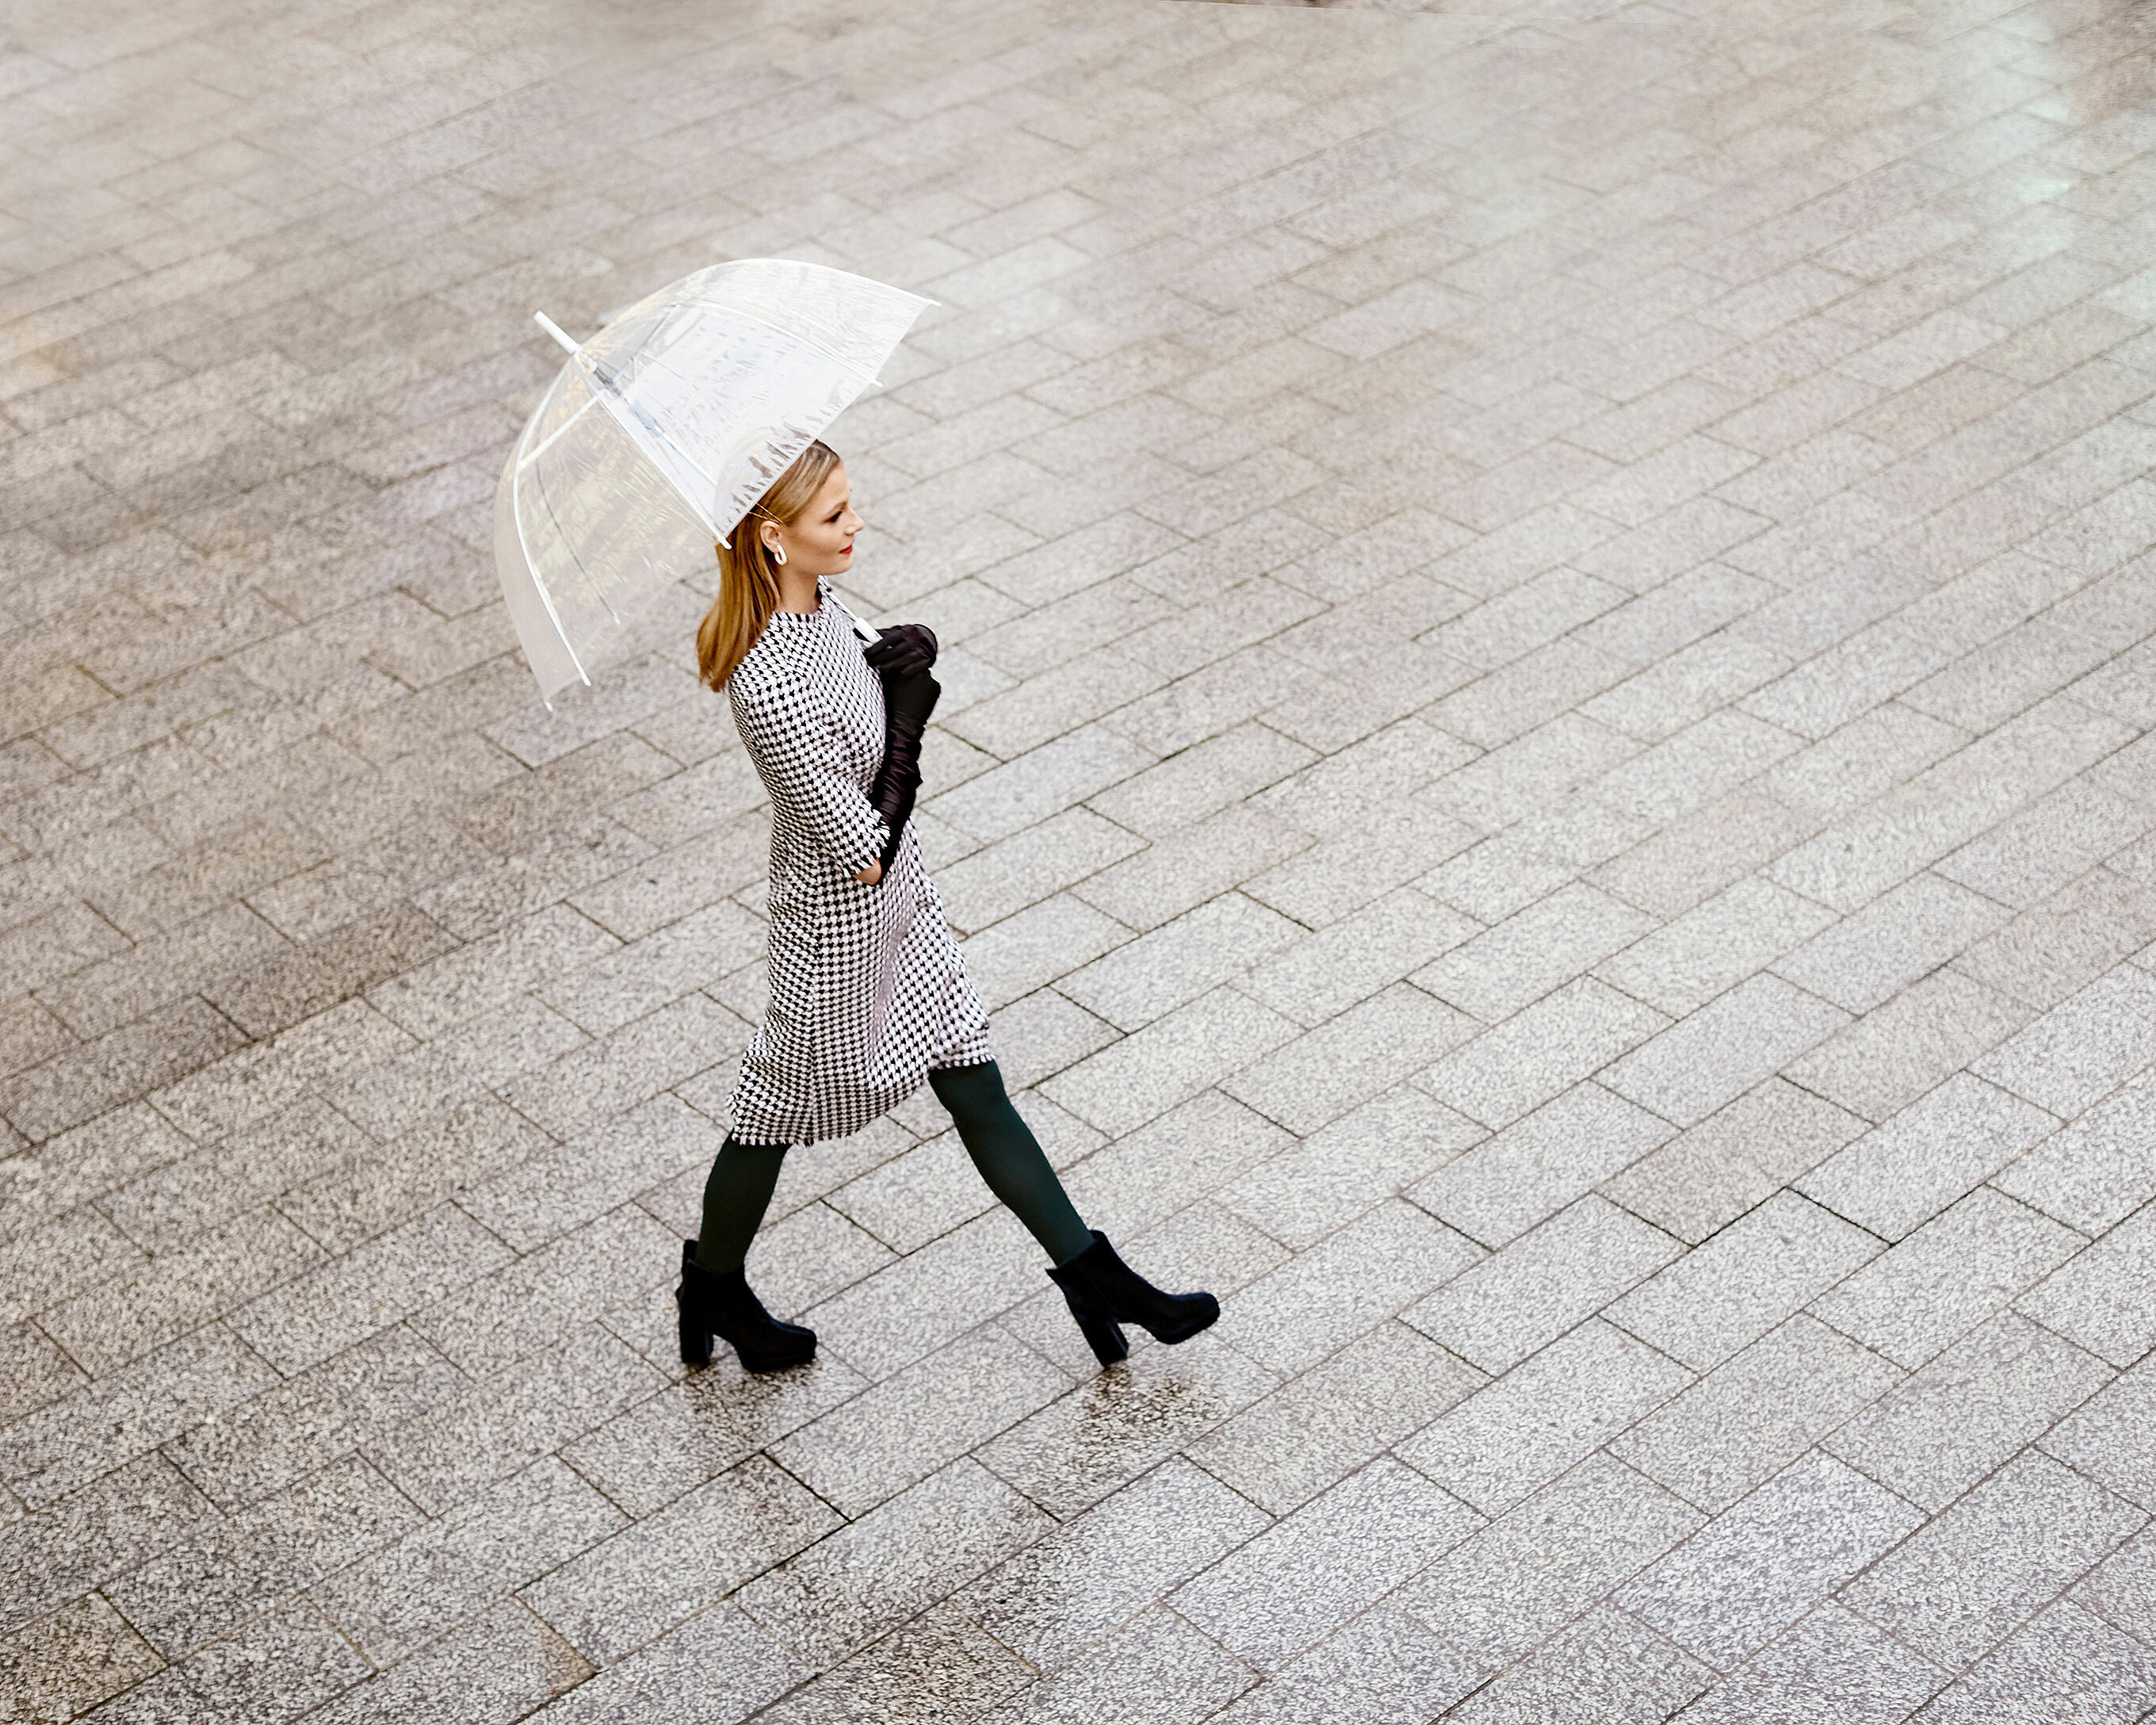 A blonde model walks in a grey long dress with black tights, black gloves and black boots with a transparent umbrella